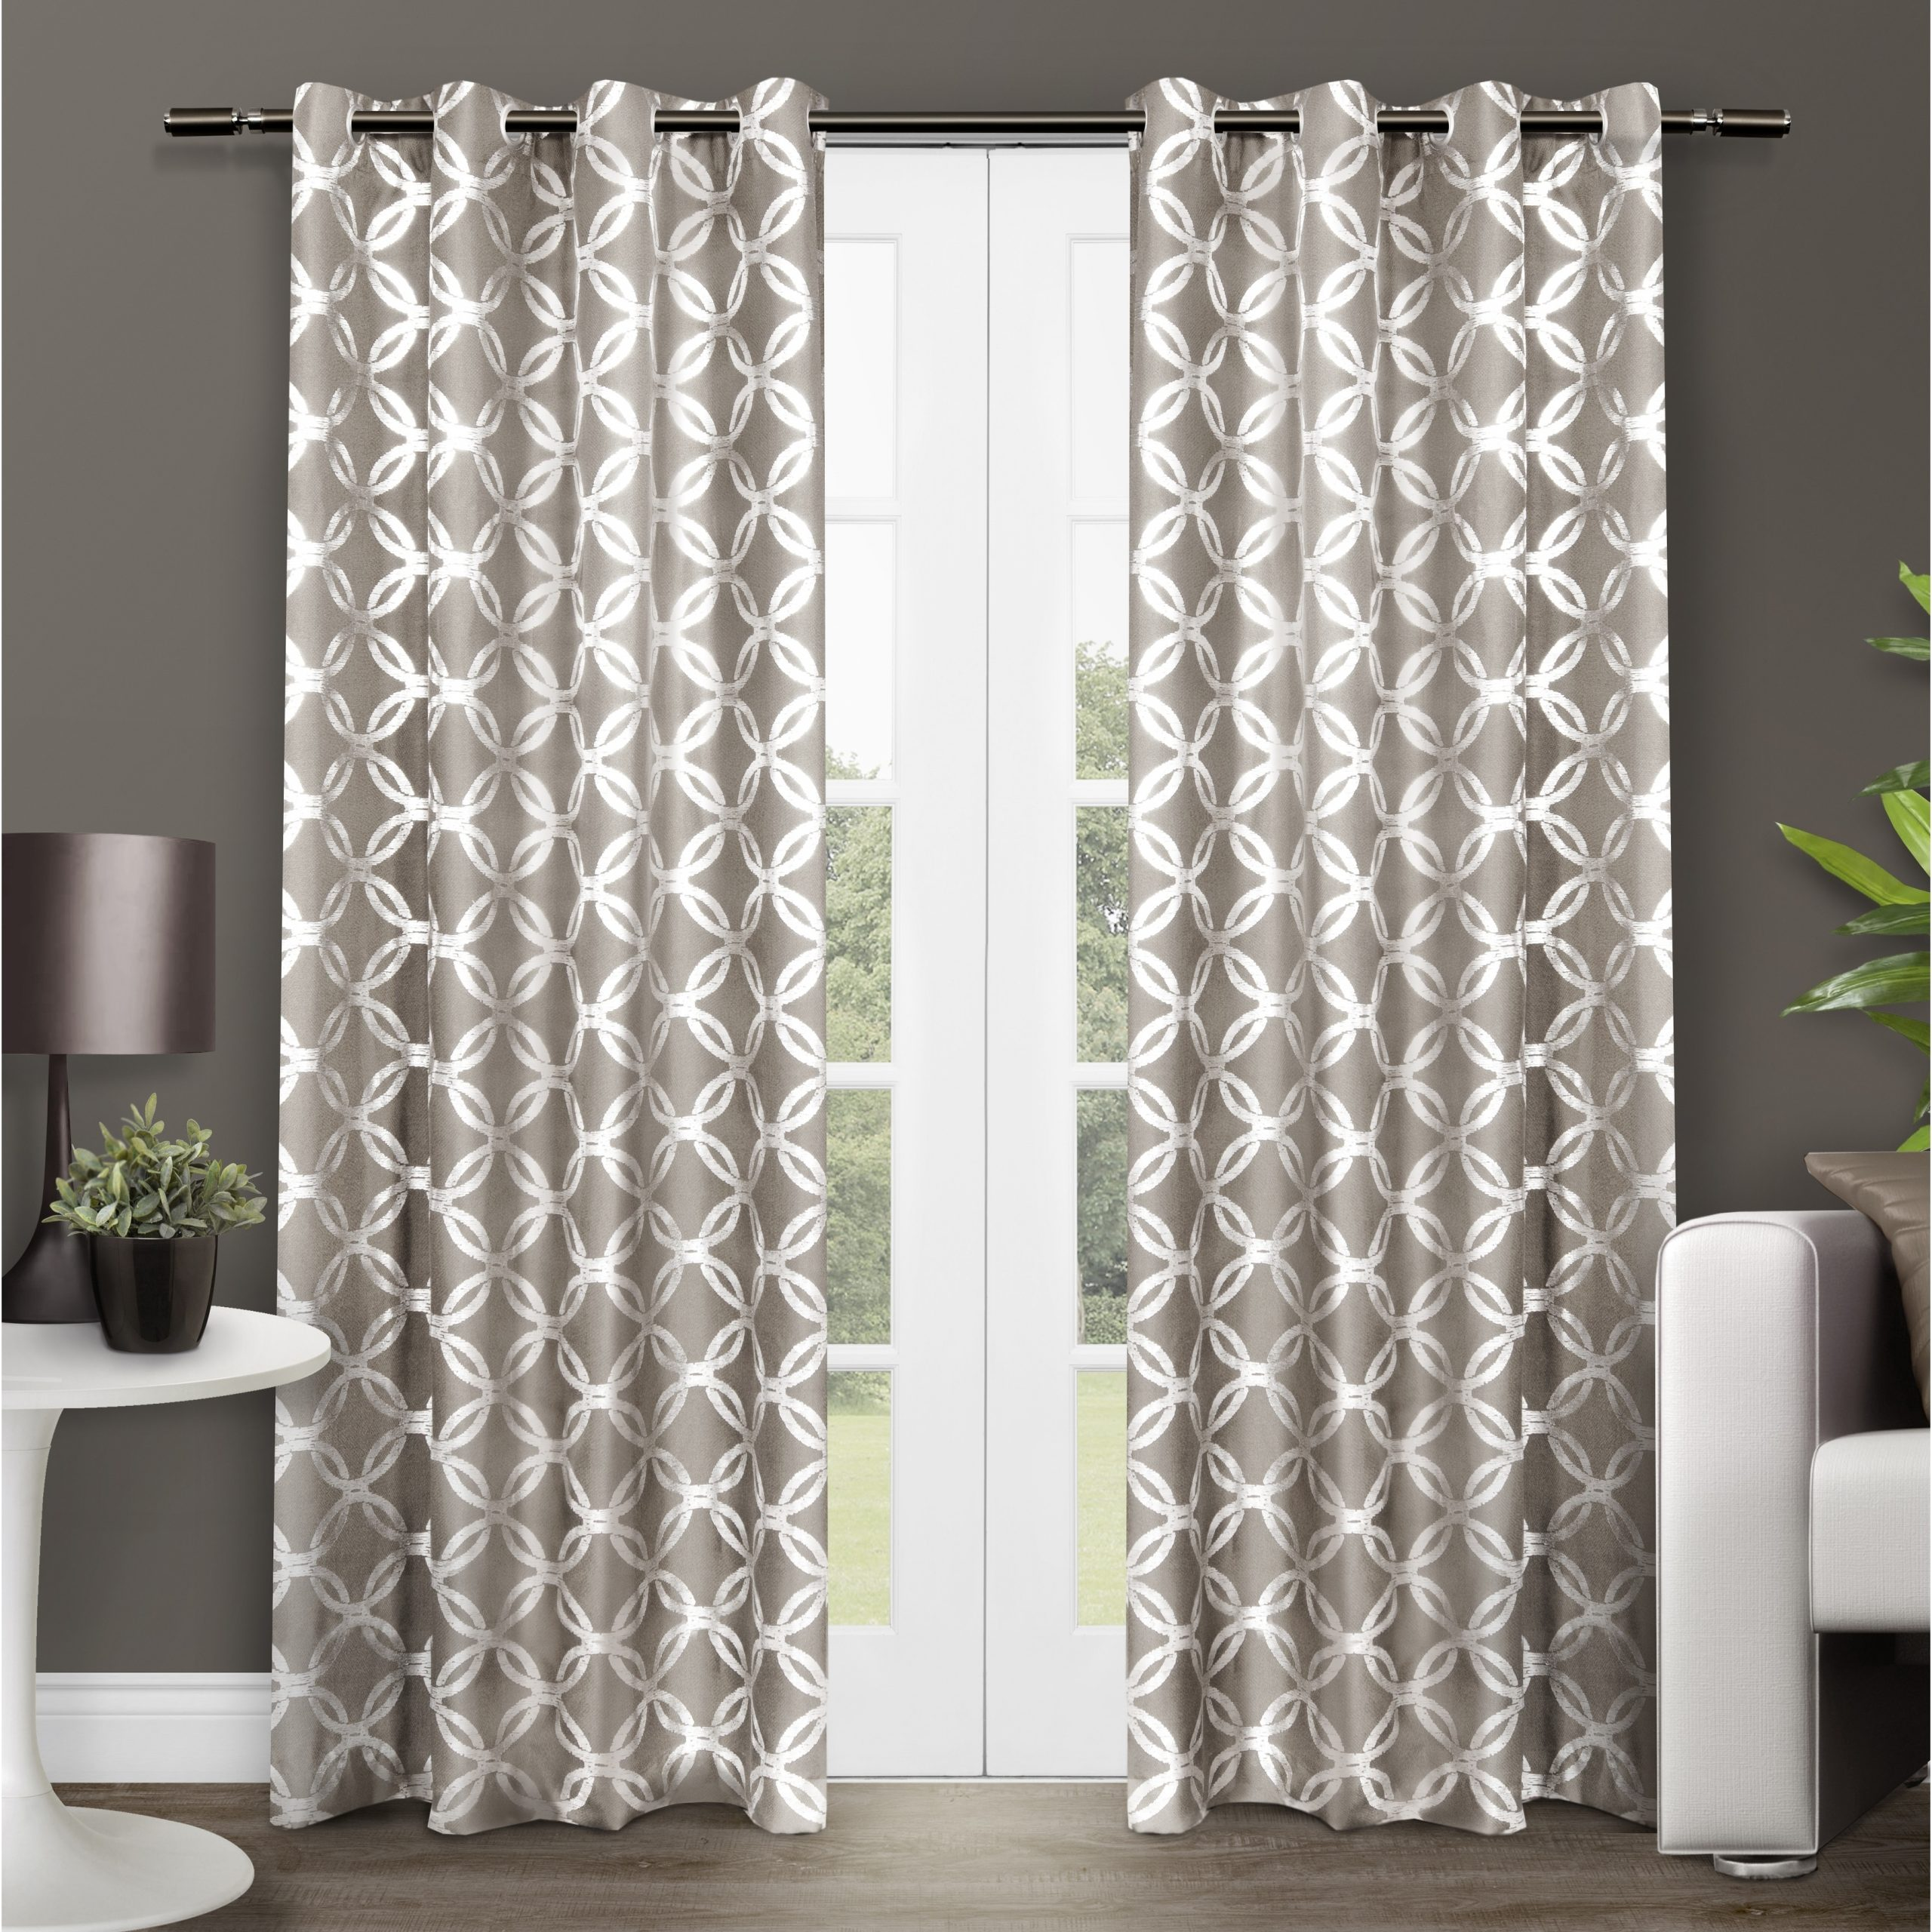 Ati Home Modo Metallic (grey) Geometric Curtain Panel Pair For Most Current Keyes Blackout Single Curtain Panels (View 4 of 20)